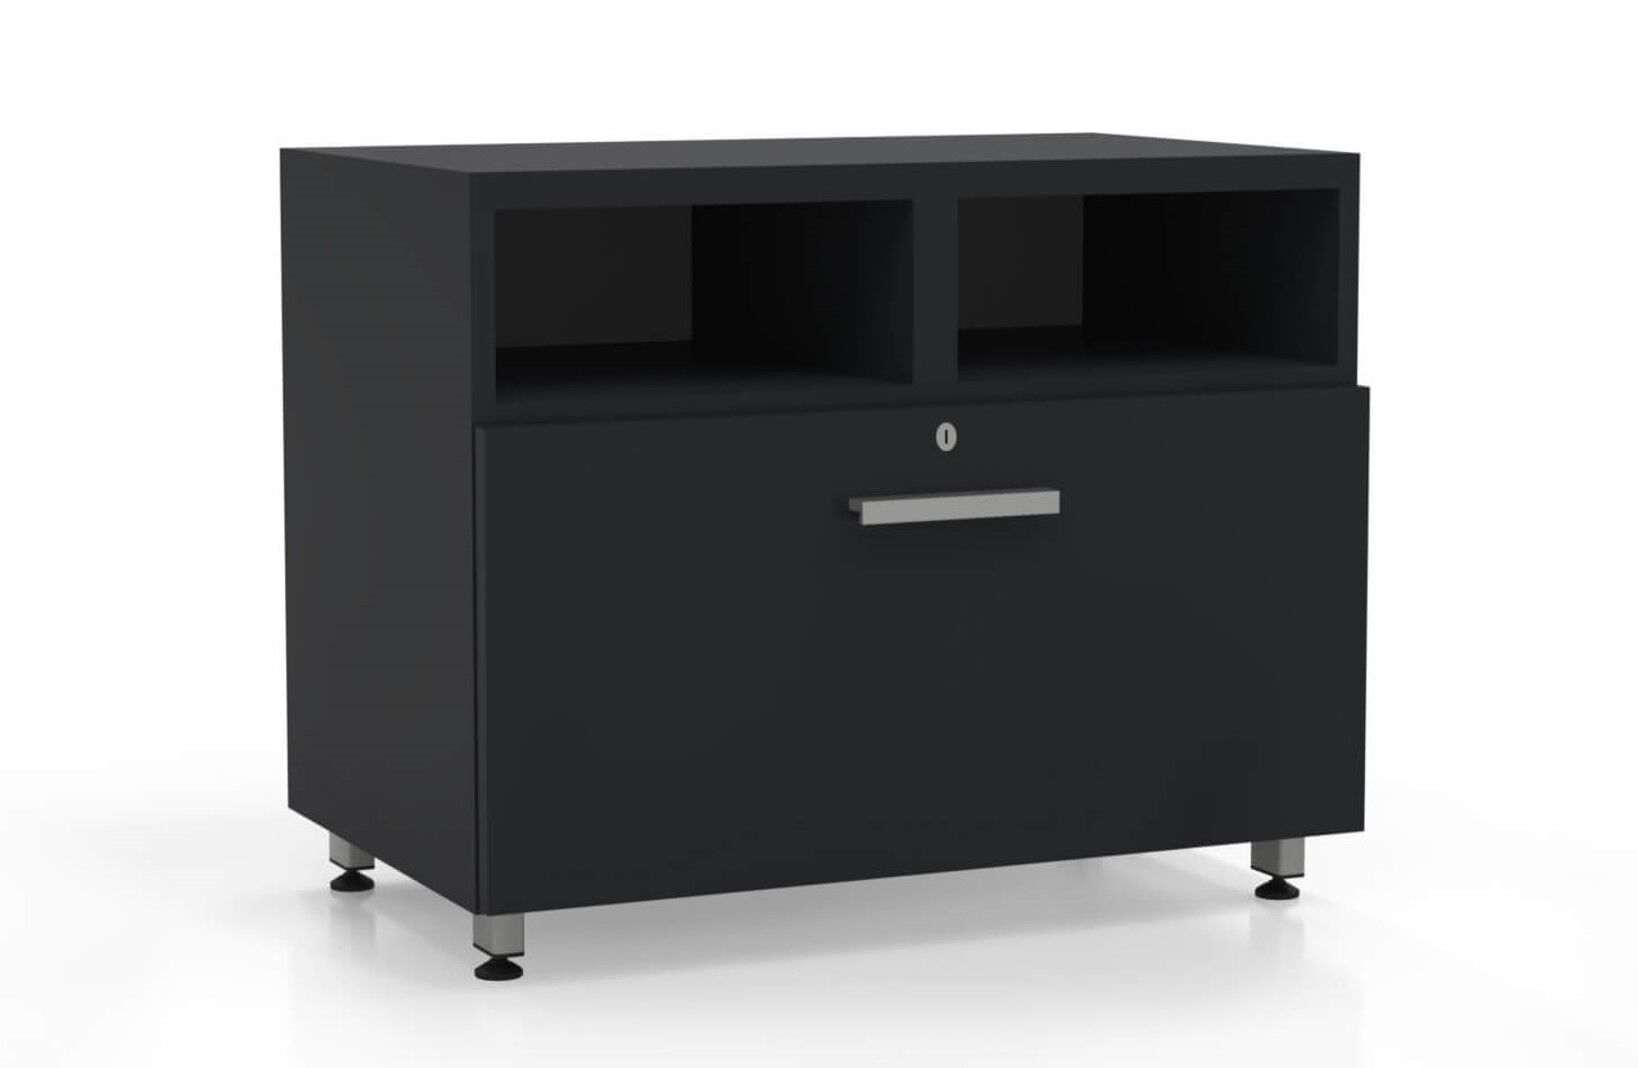 L shaped table desk lateral file raven_preview